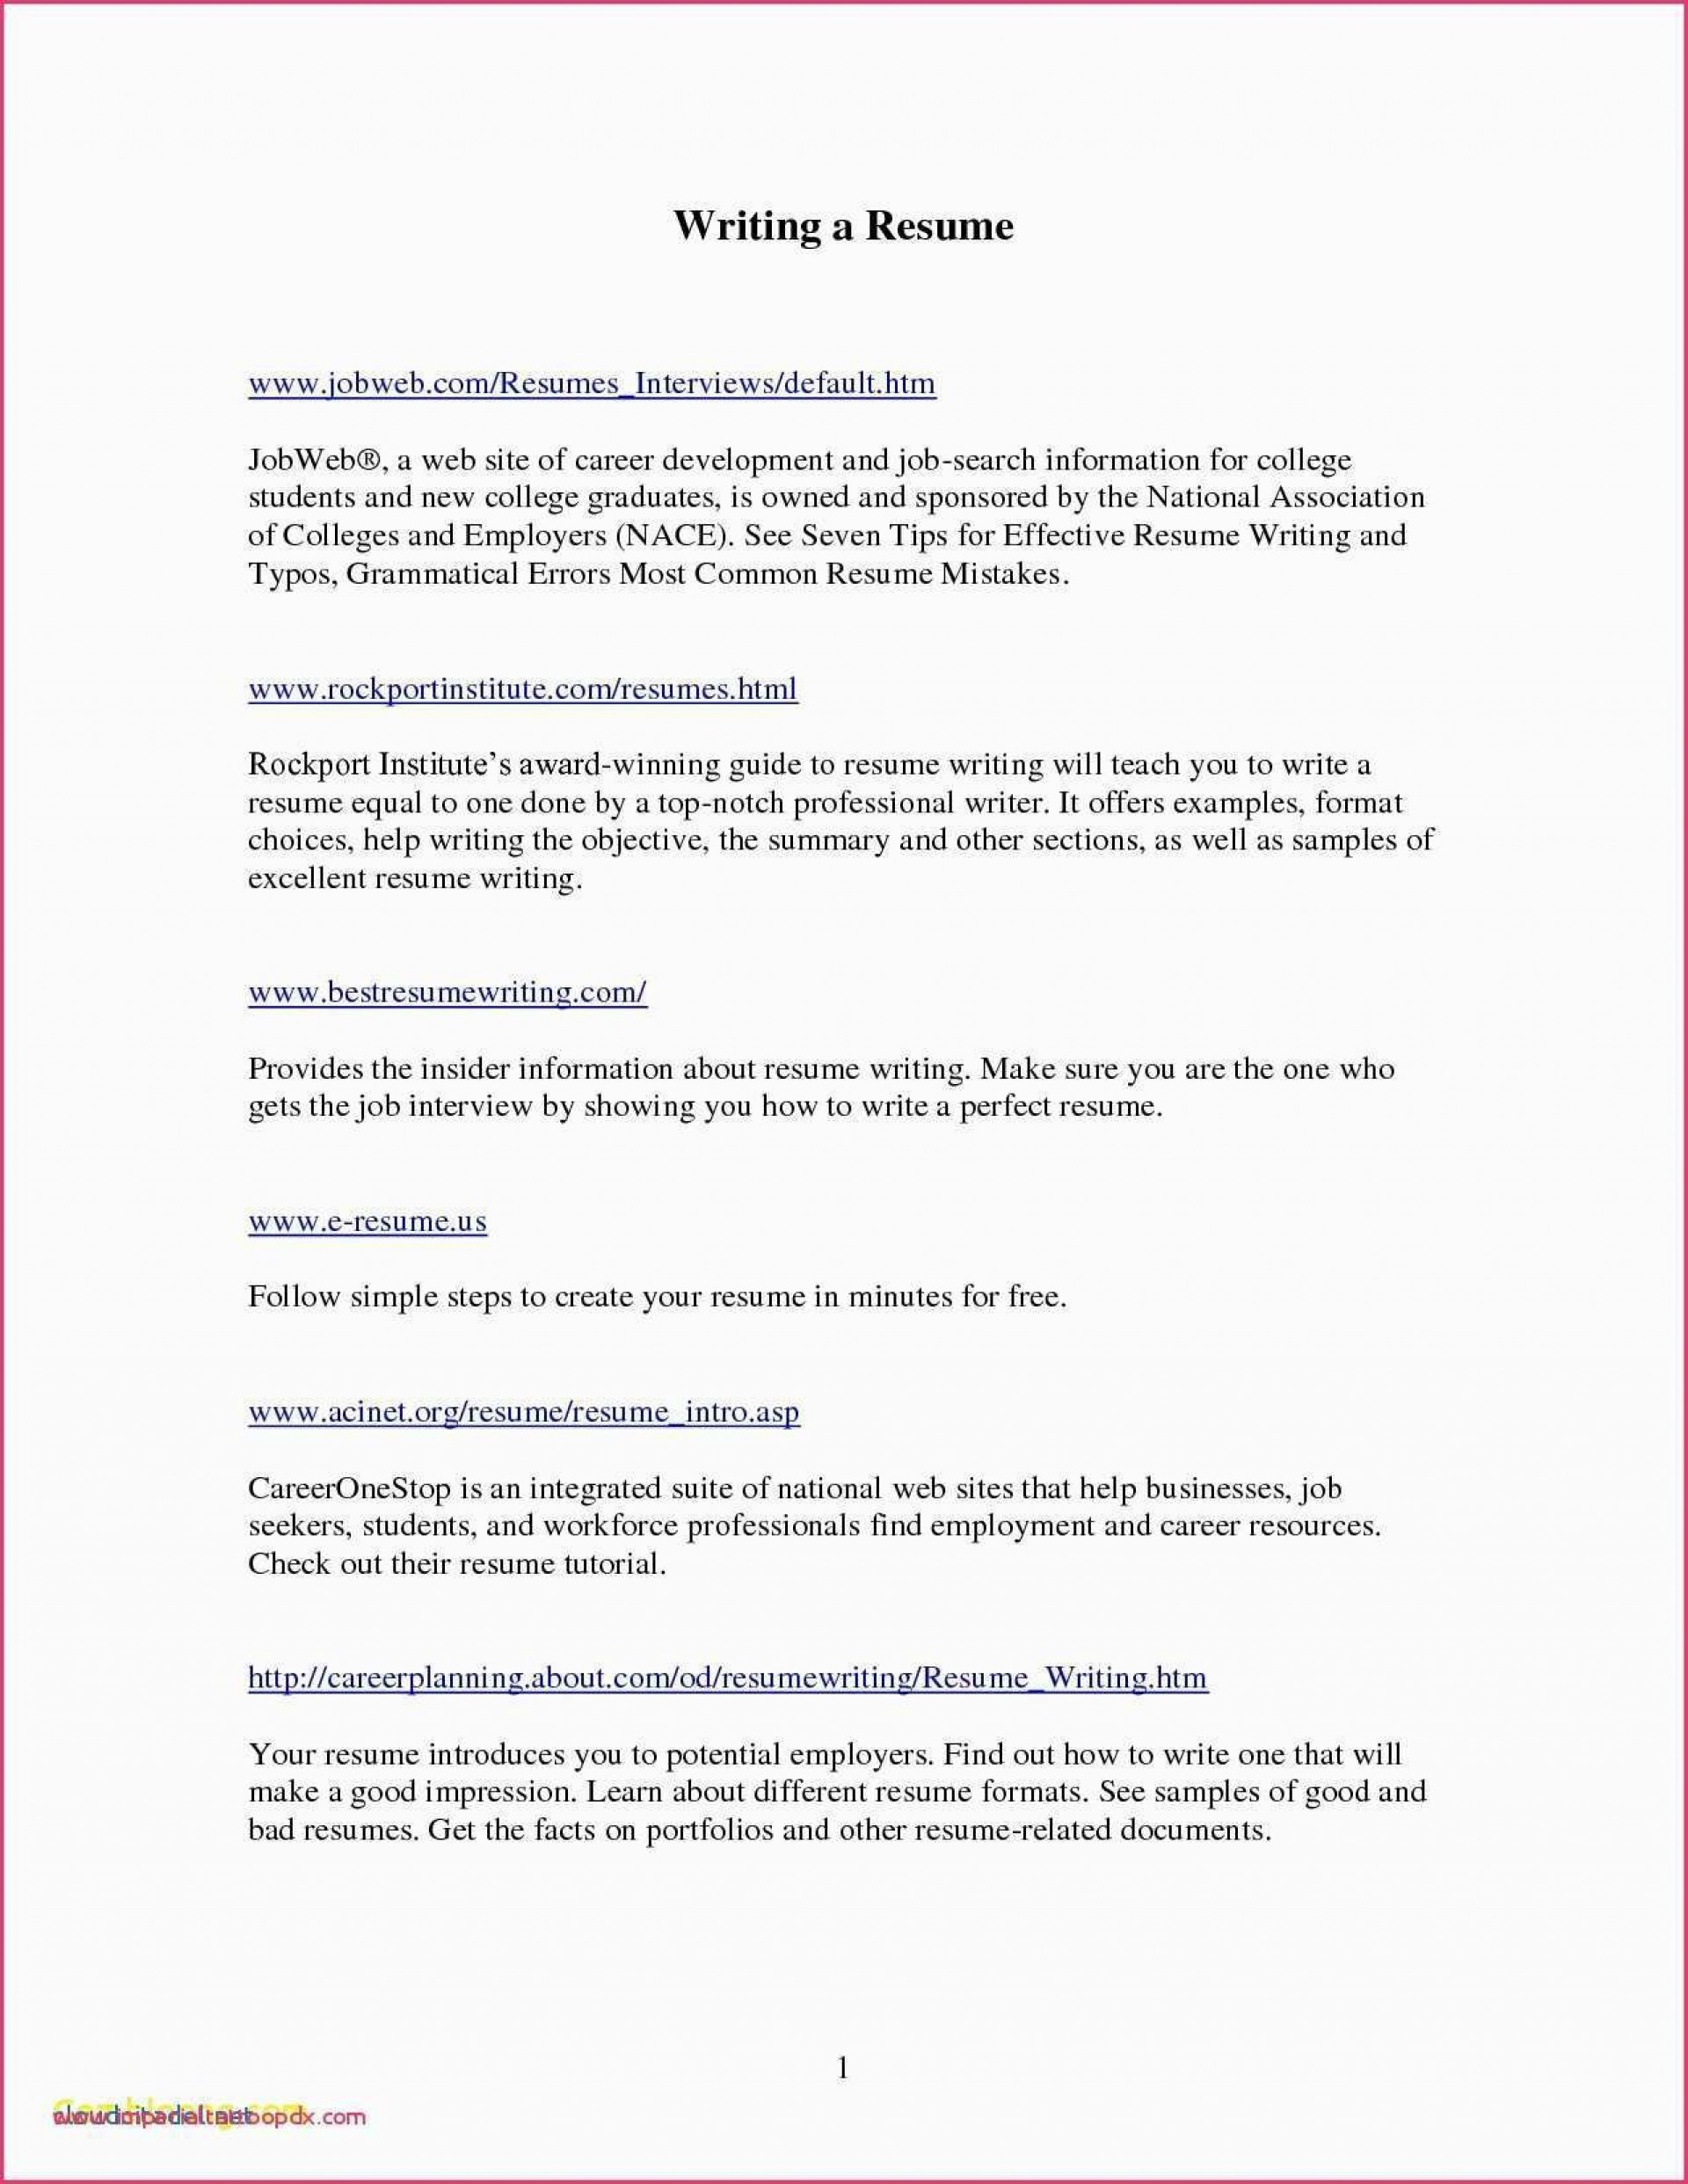 017 Research Paper Apa Outline Template Letter Format New Formal Mla Striking Free Blank 1920